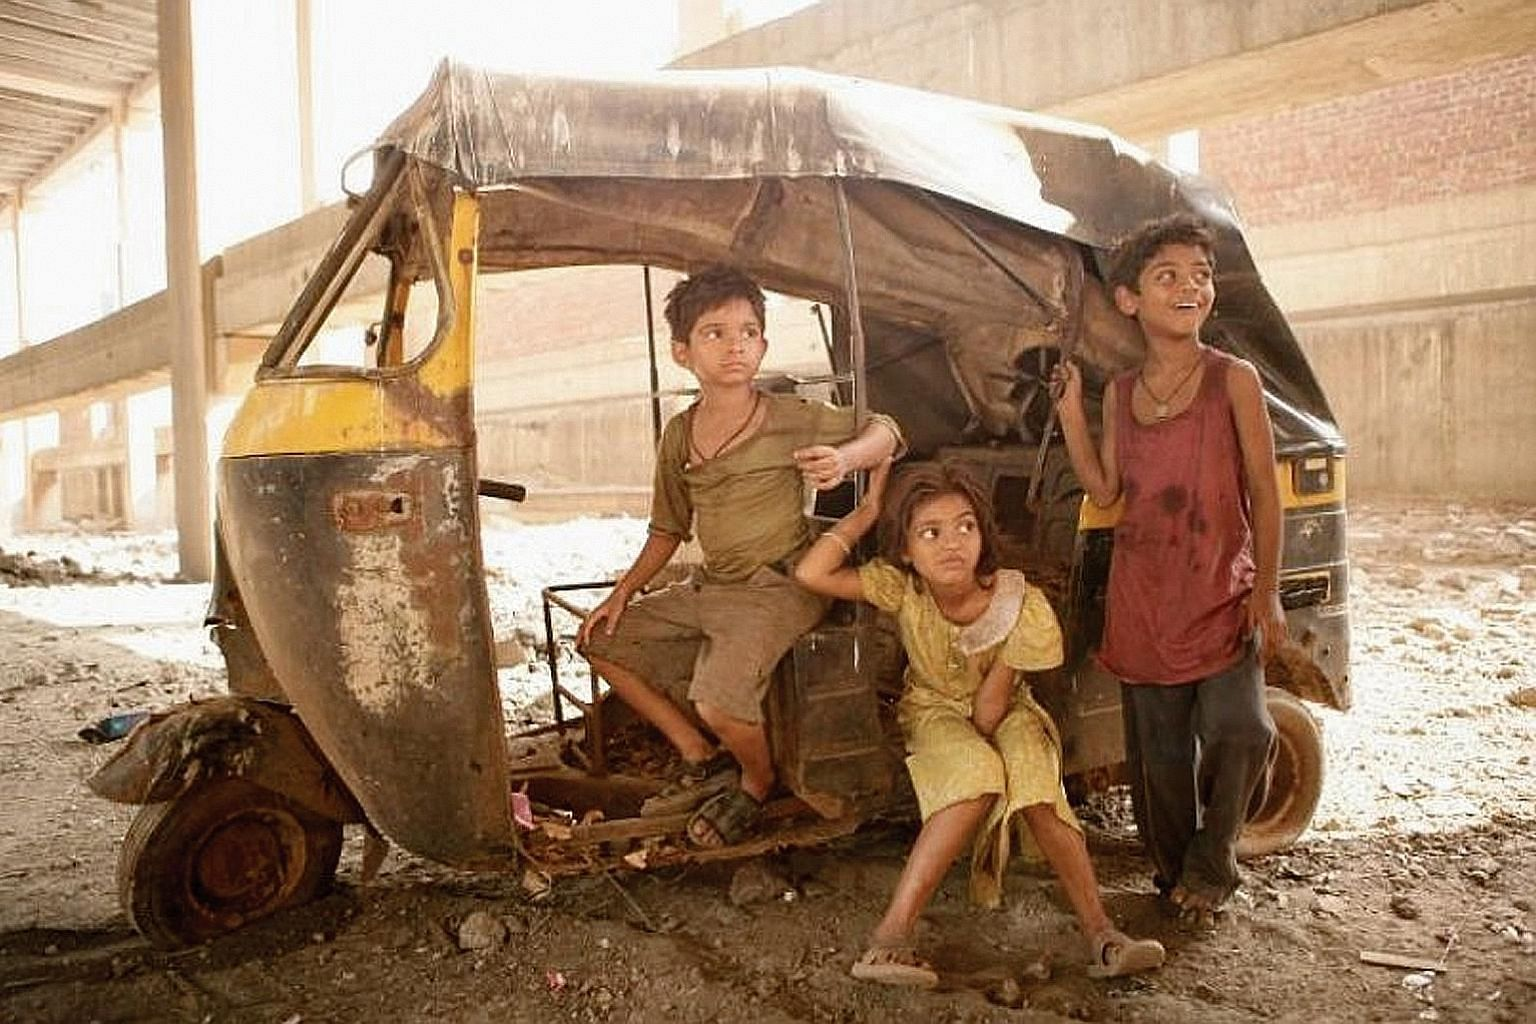 India is consistently portrayed as backward, uncivilised, savage and traditional in foreign movies, such as Slumdog Millionaire (above), a journal paper showed.